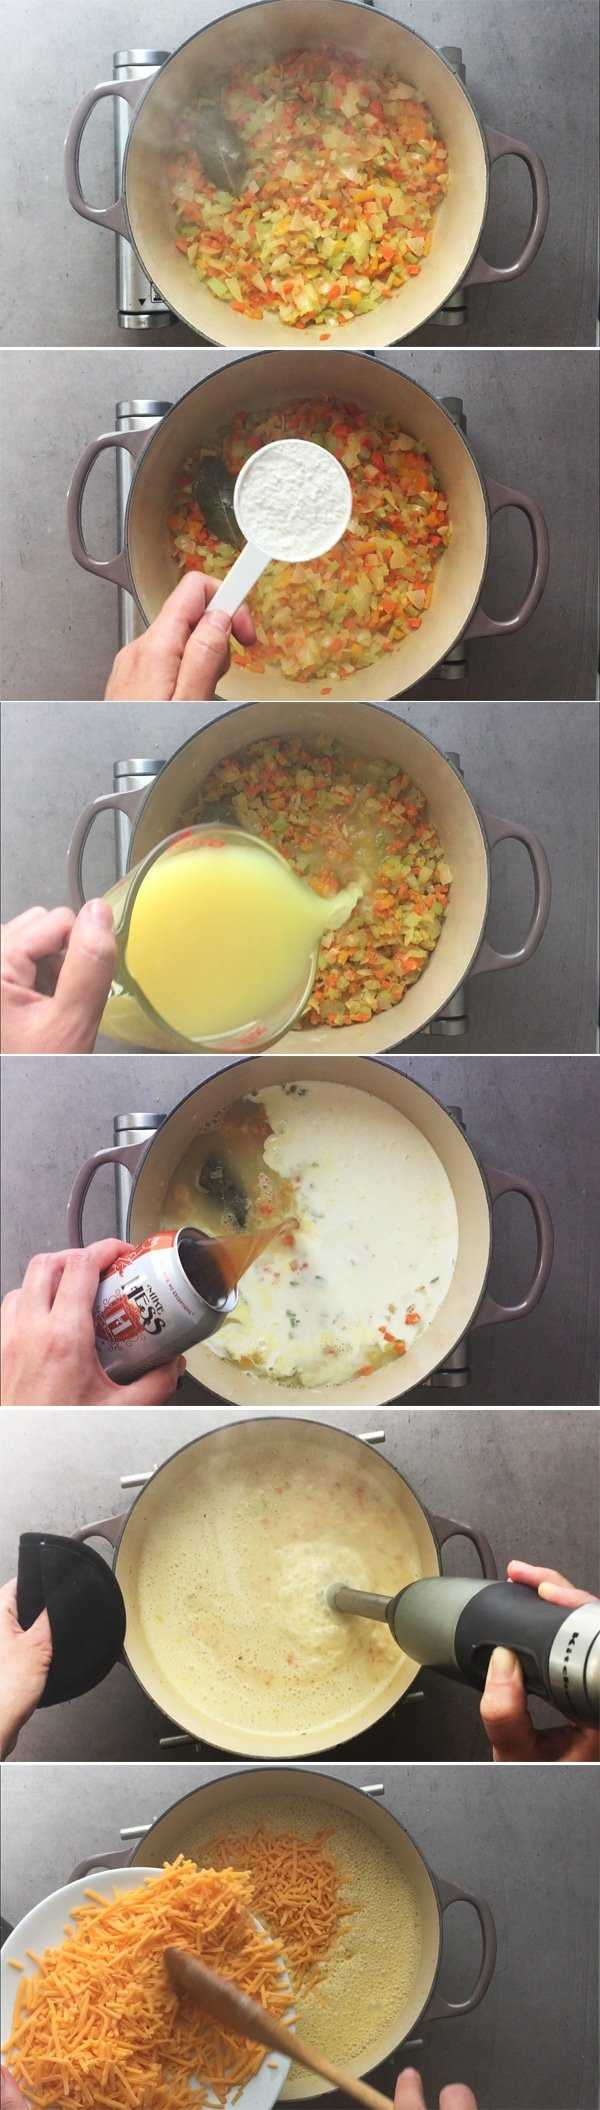 How to Make Beer Cheese Soup - Step by Step Process